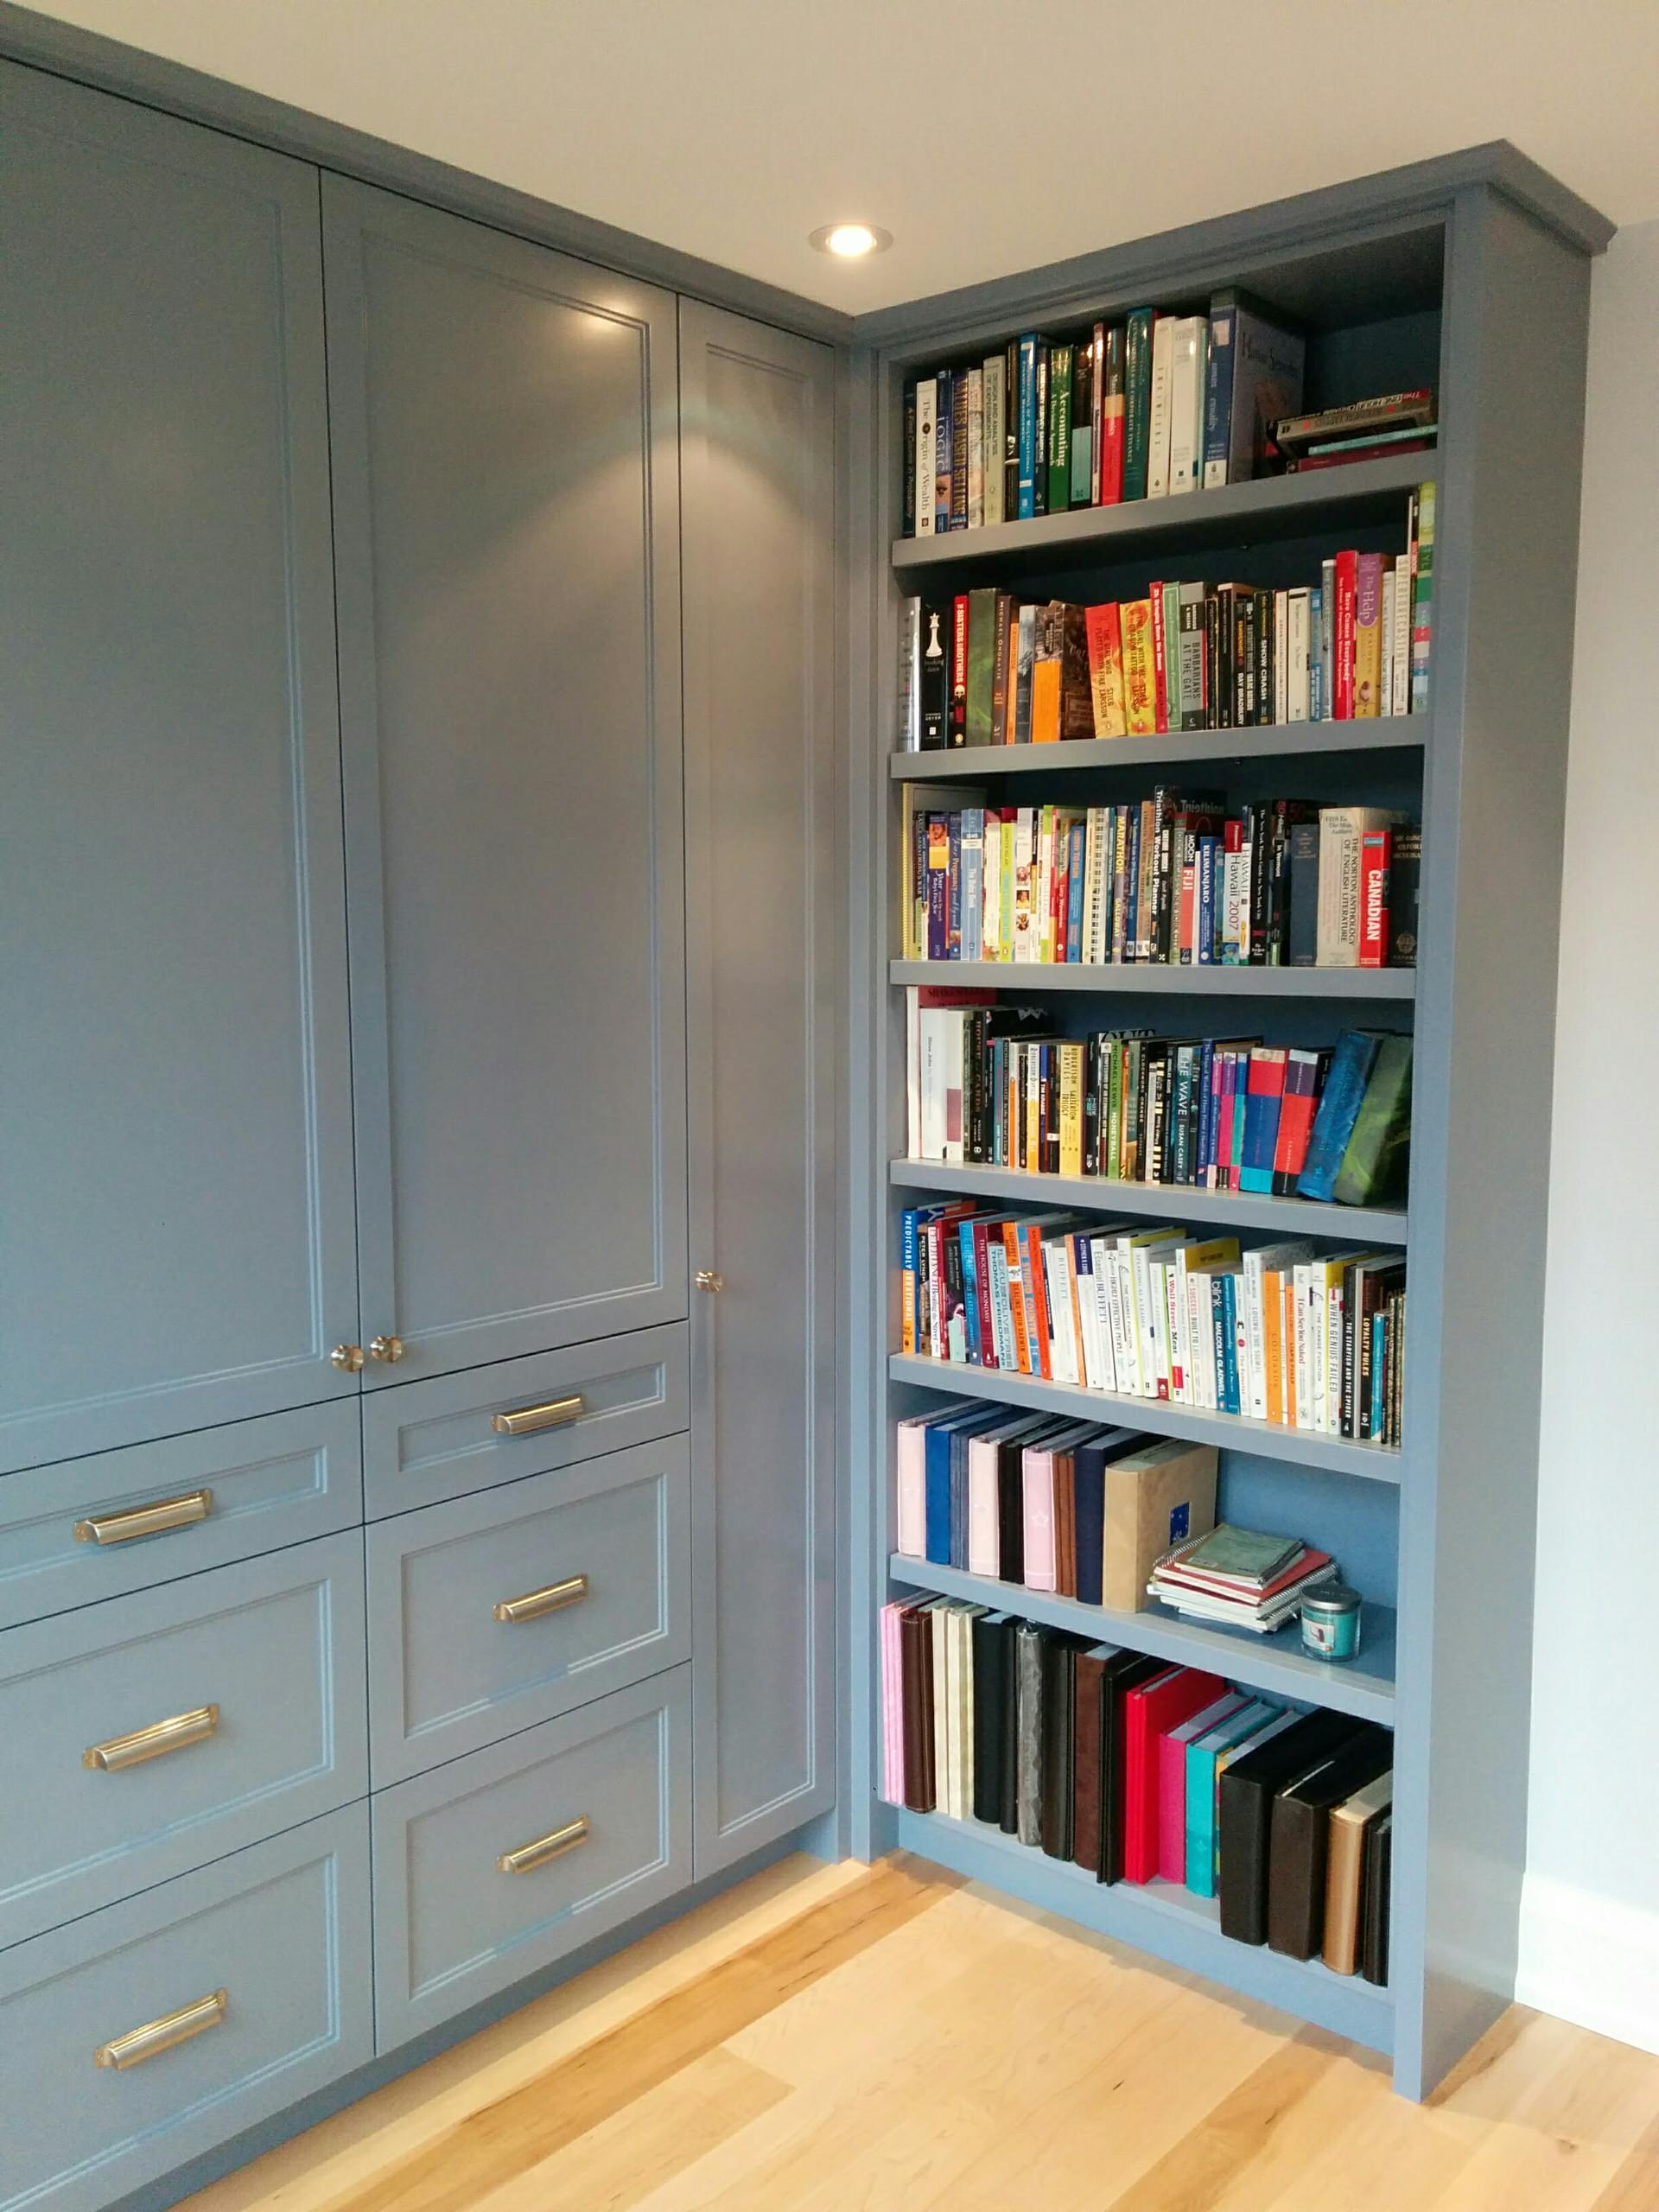 Built-in Storage in Home Office